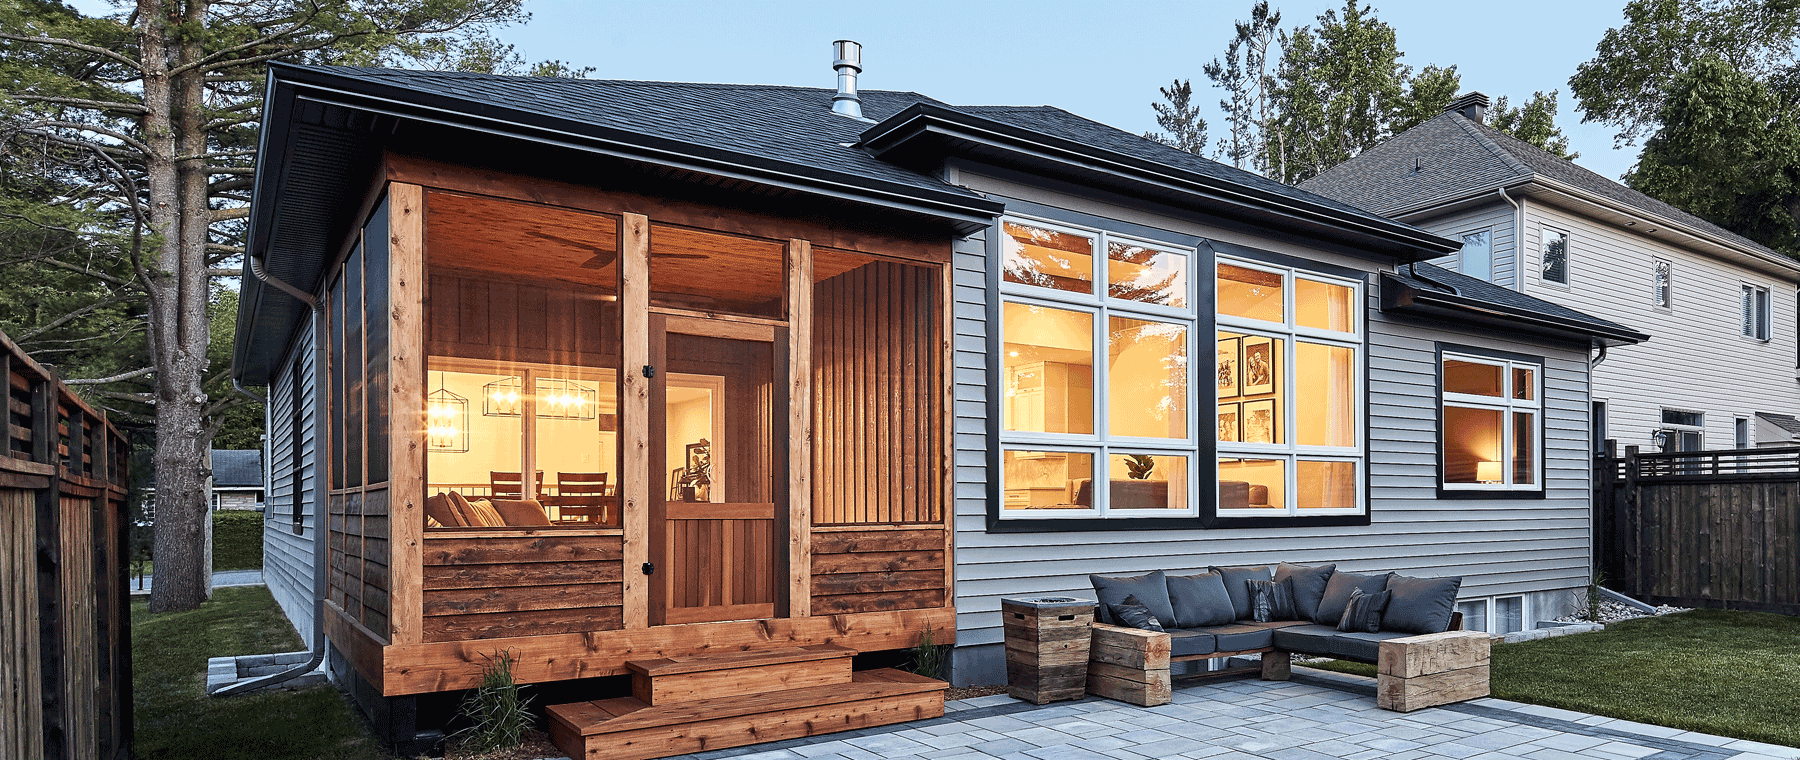 Screened-in-porch makes the most of backyard season